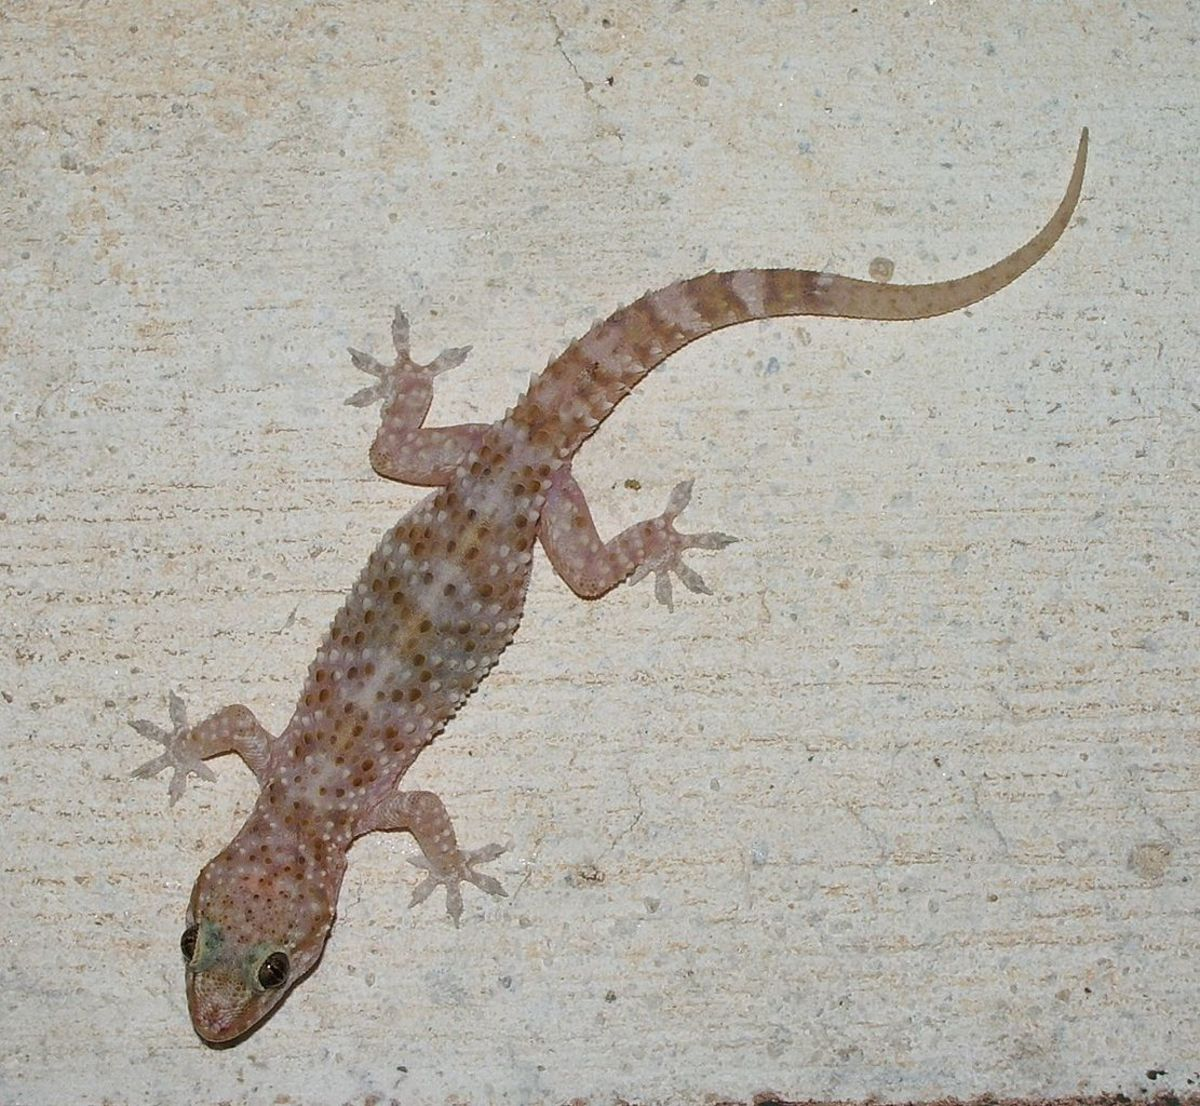 How To Rid Your Home Of Lizards Dengarden